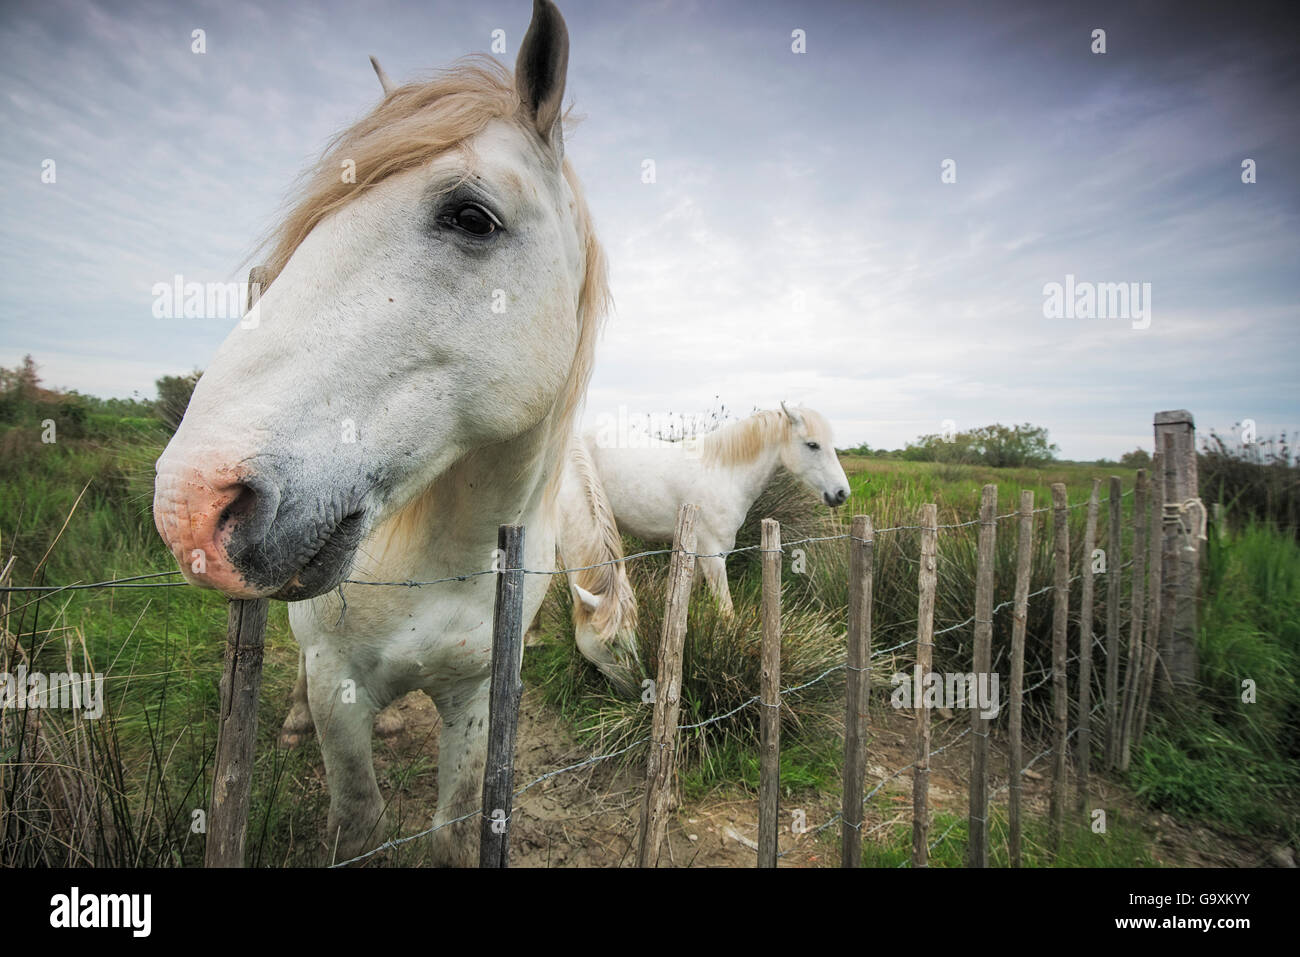 Close up of a Camargue horse (Equus caballus) looking over a fence, Camargue, France, May. - Stock Image